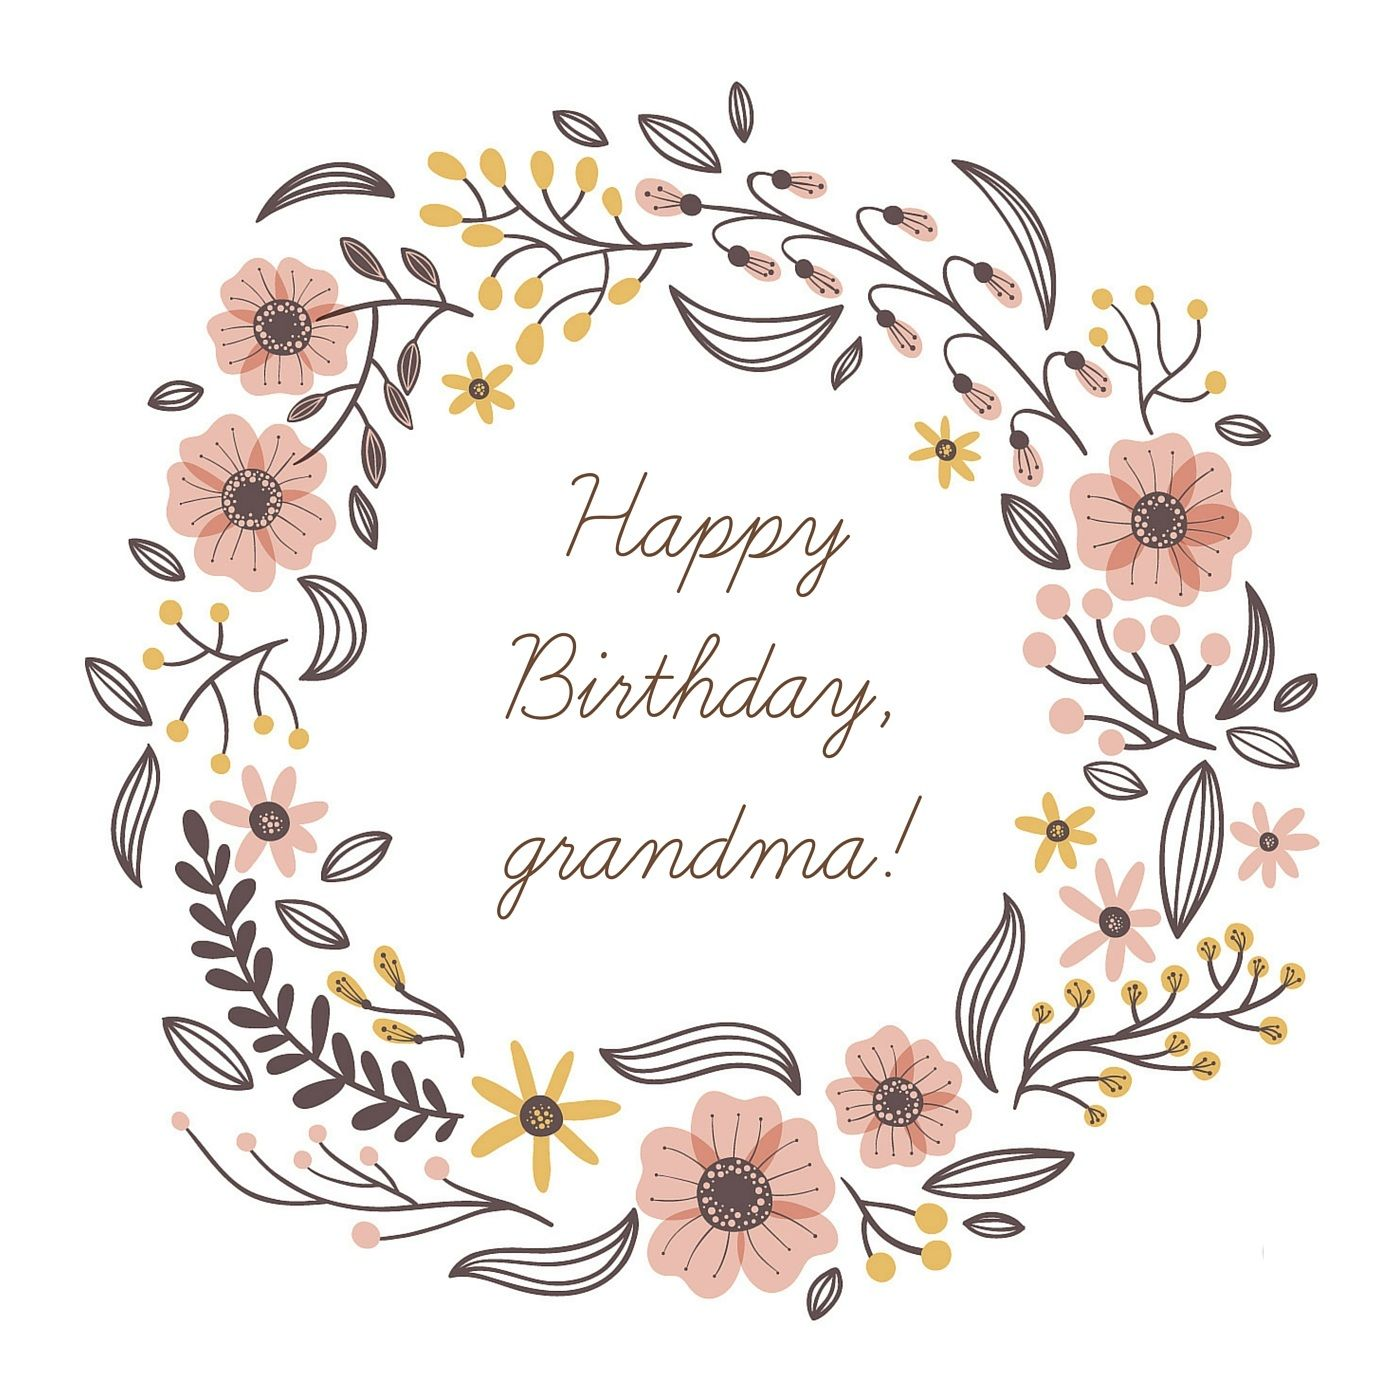 Happy Birthday Grandma – Birthday Cards Messages